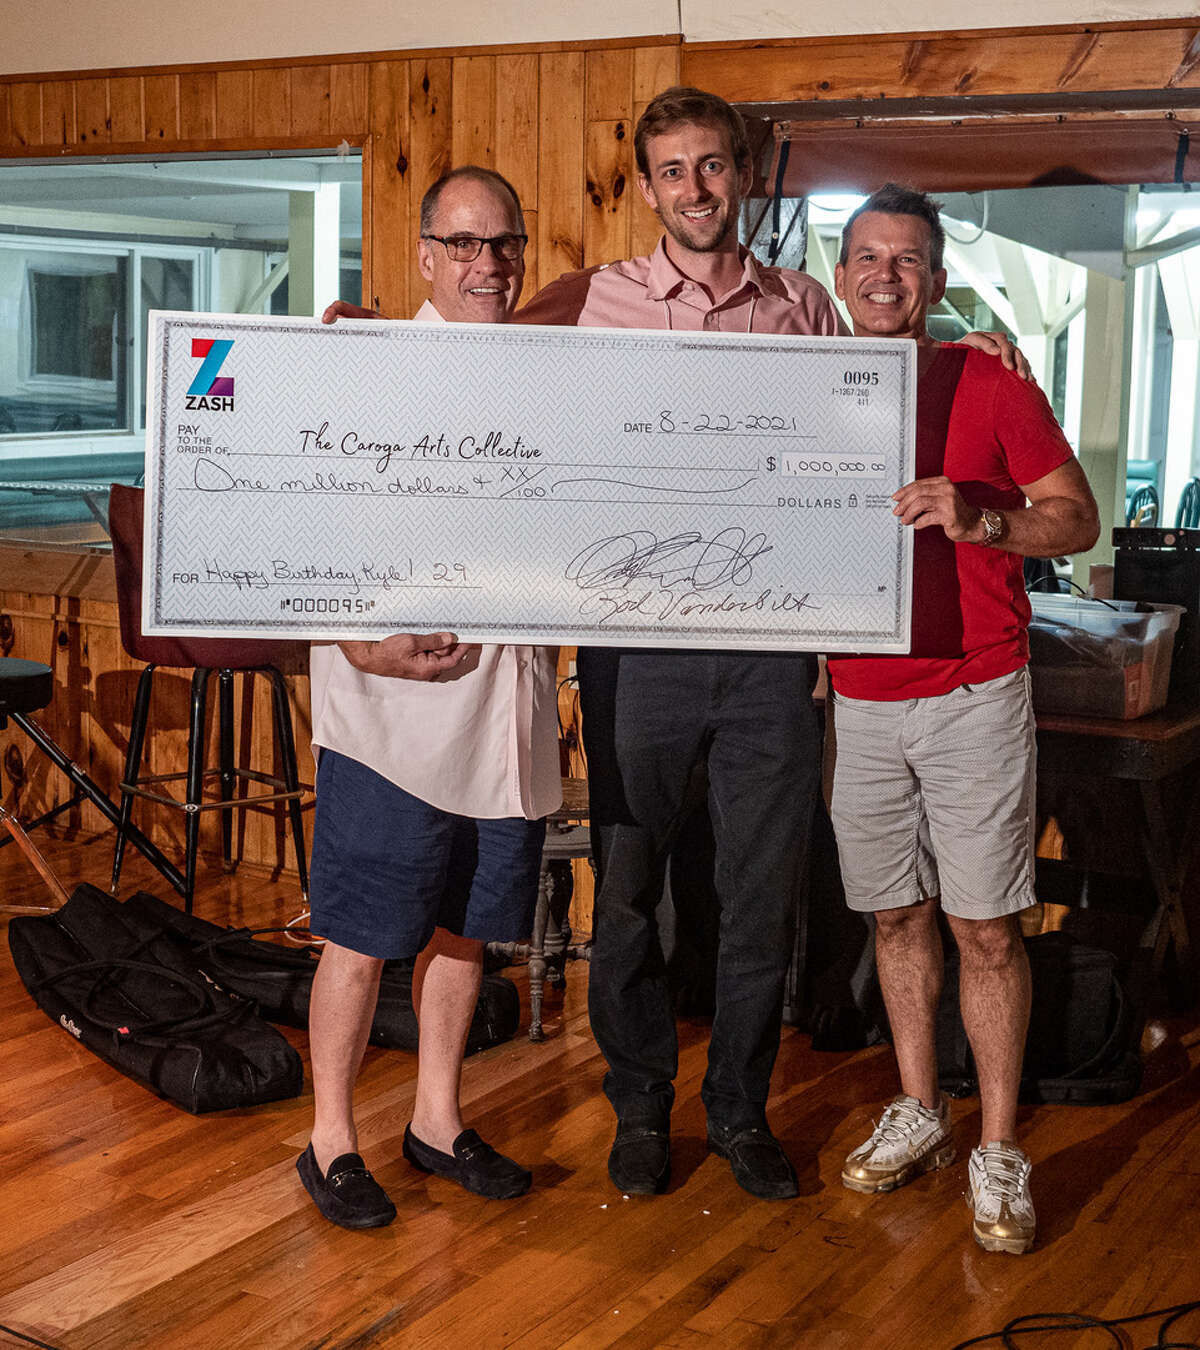 $1 million check presented to Kyle Barrett Price, center, by Ted Farnsworth,left, and Rod Vanderbilt. (Photo by Paul Valovic)